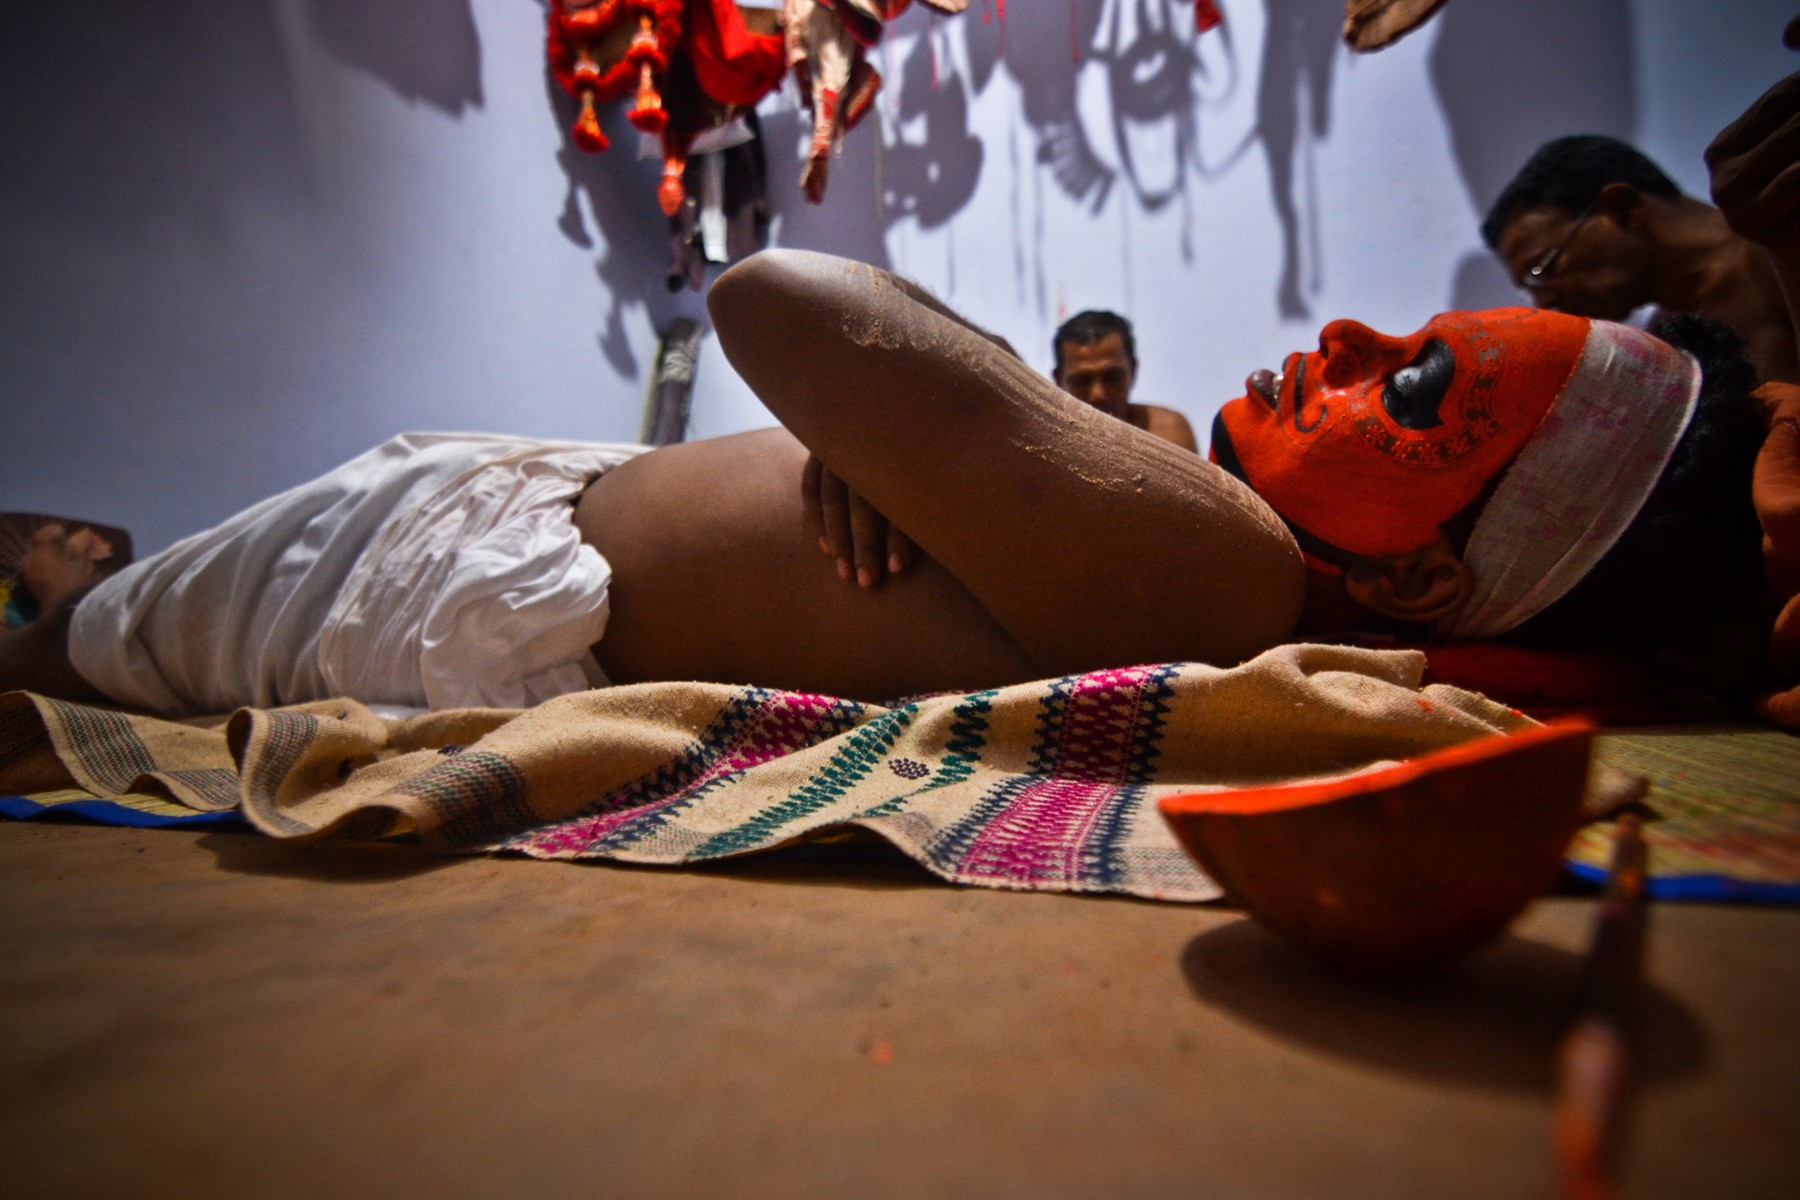 A Theyyam artist getting ready to perform